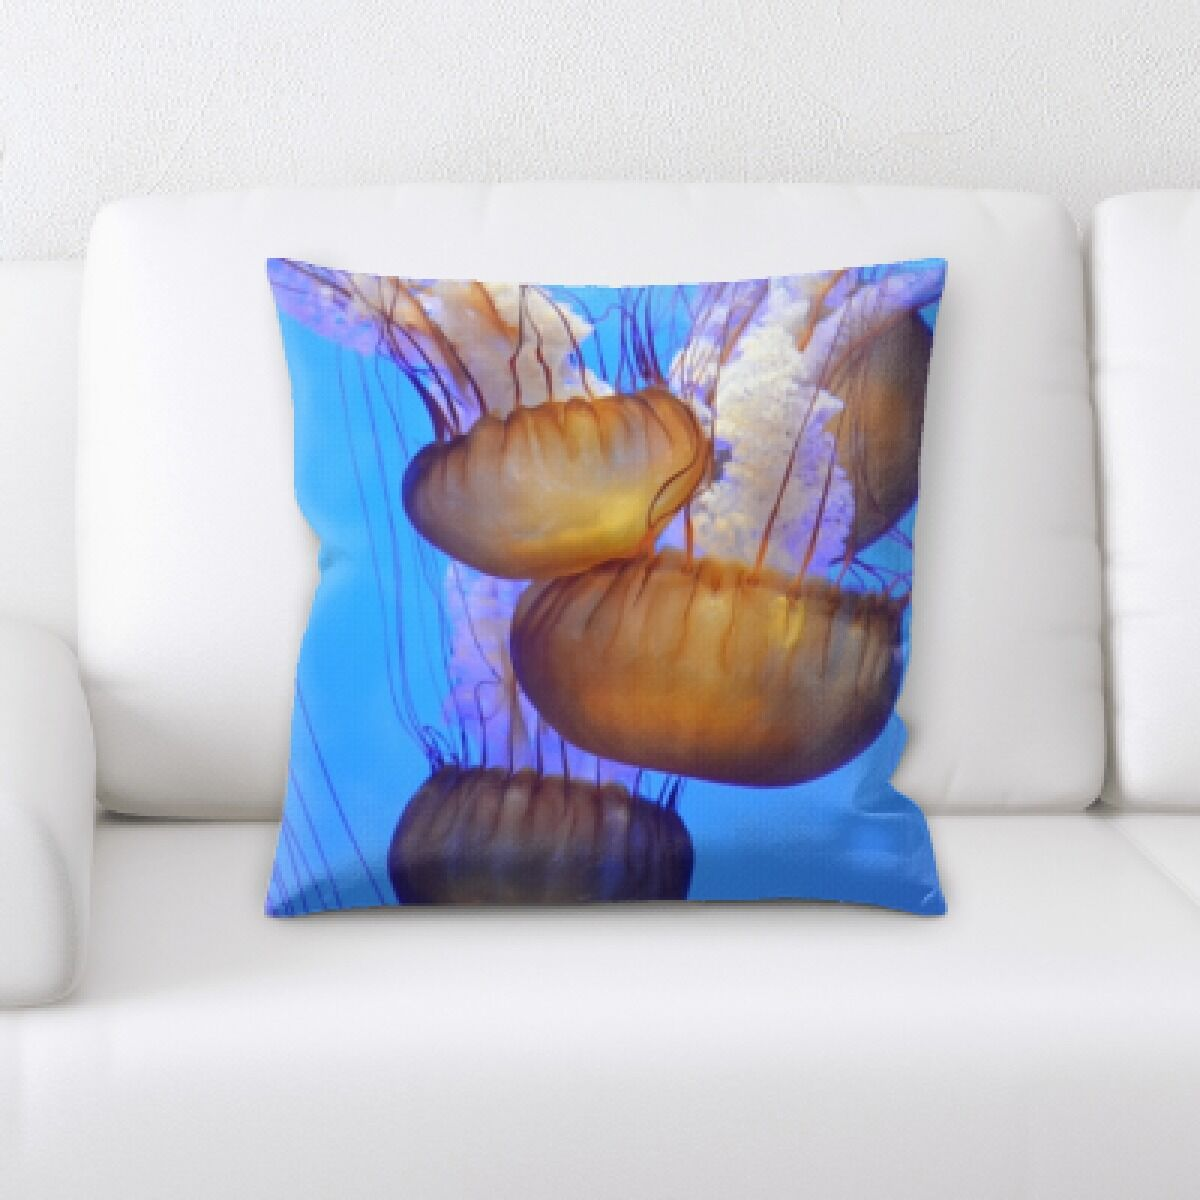 Patson Jelly Fish (7) Throw Pillow